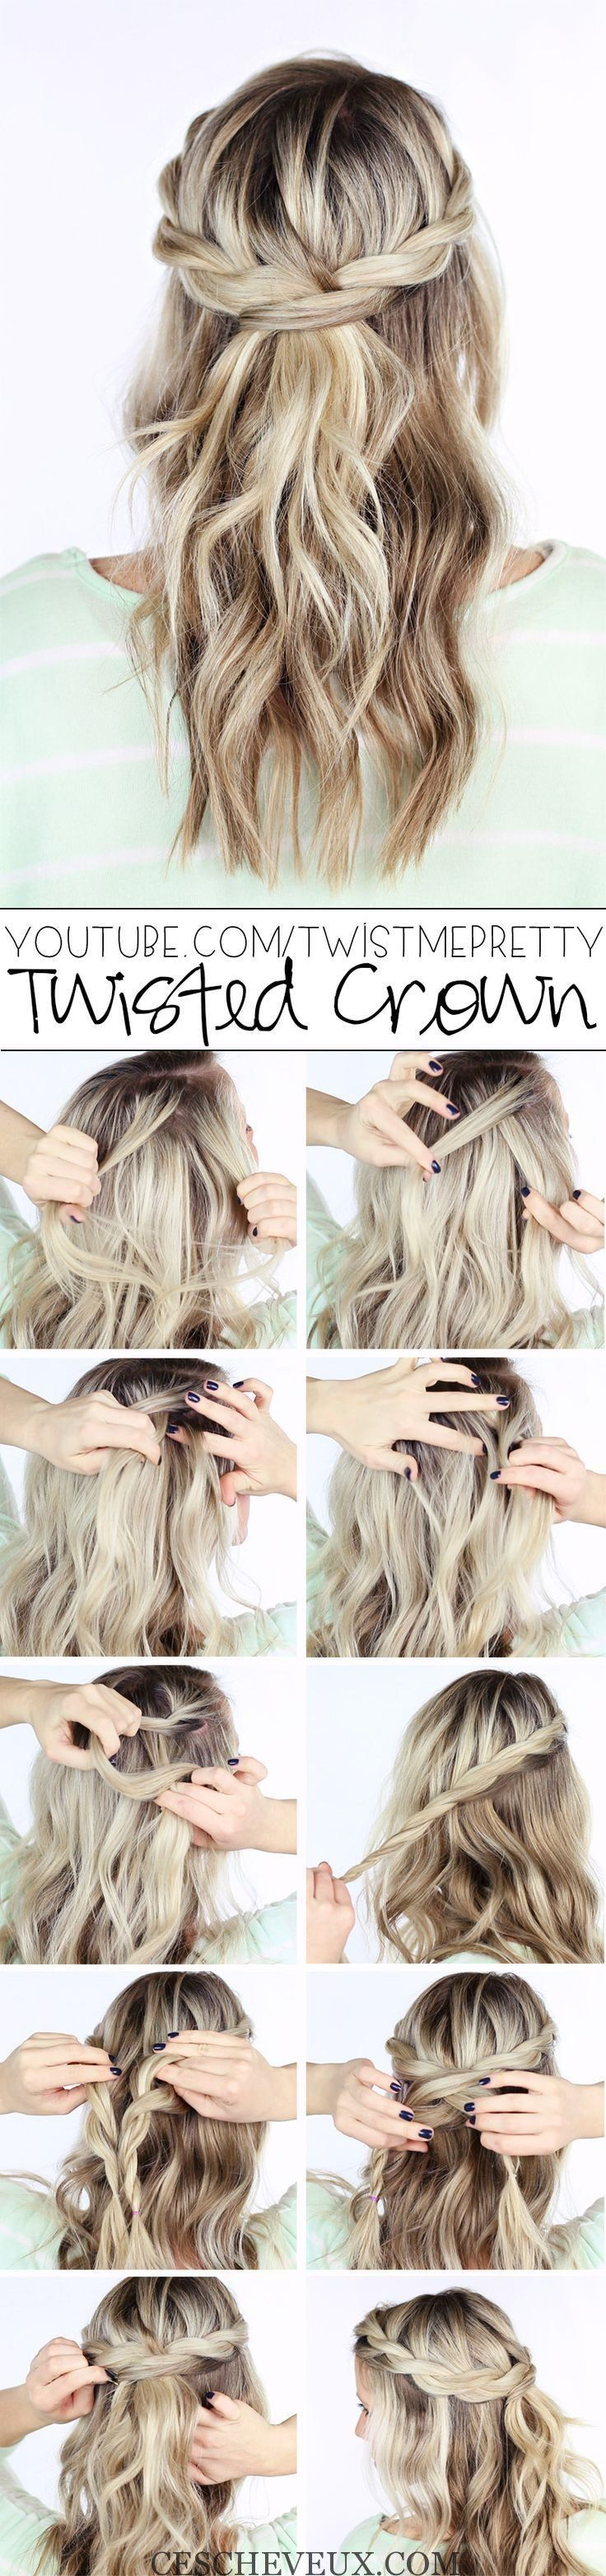 71 best Hairs images on Pinterest